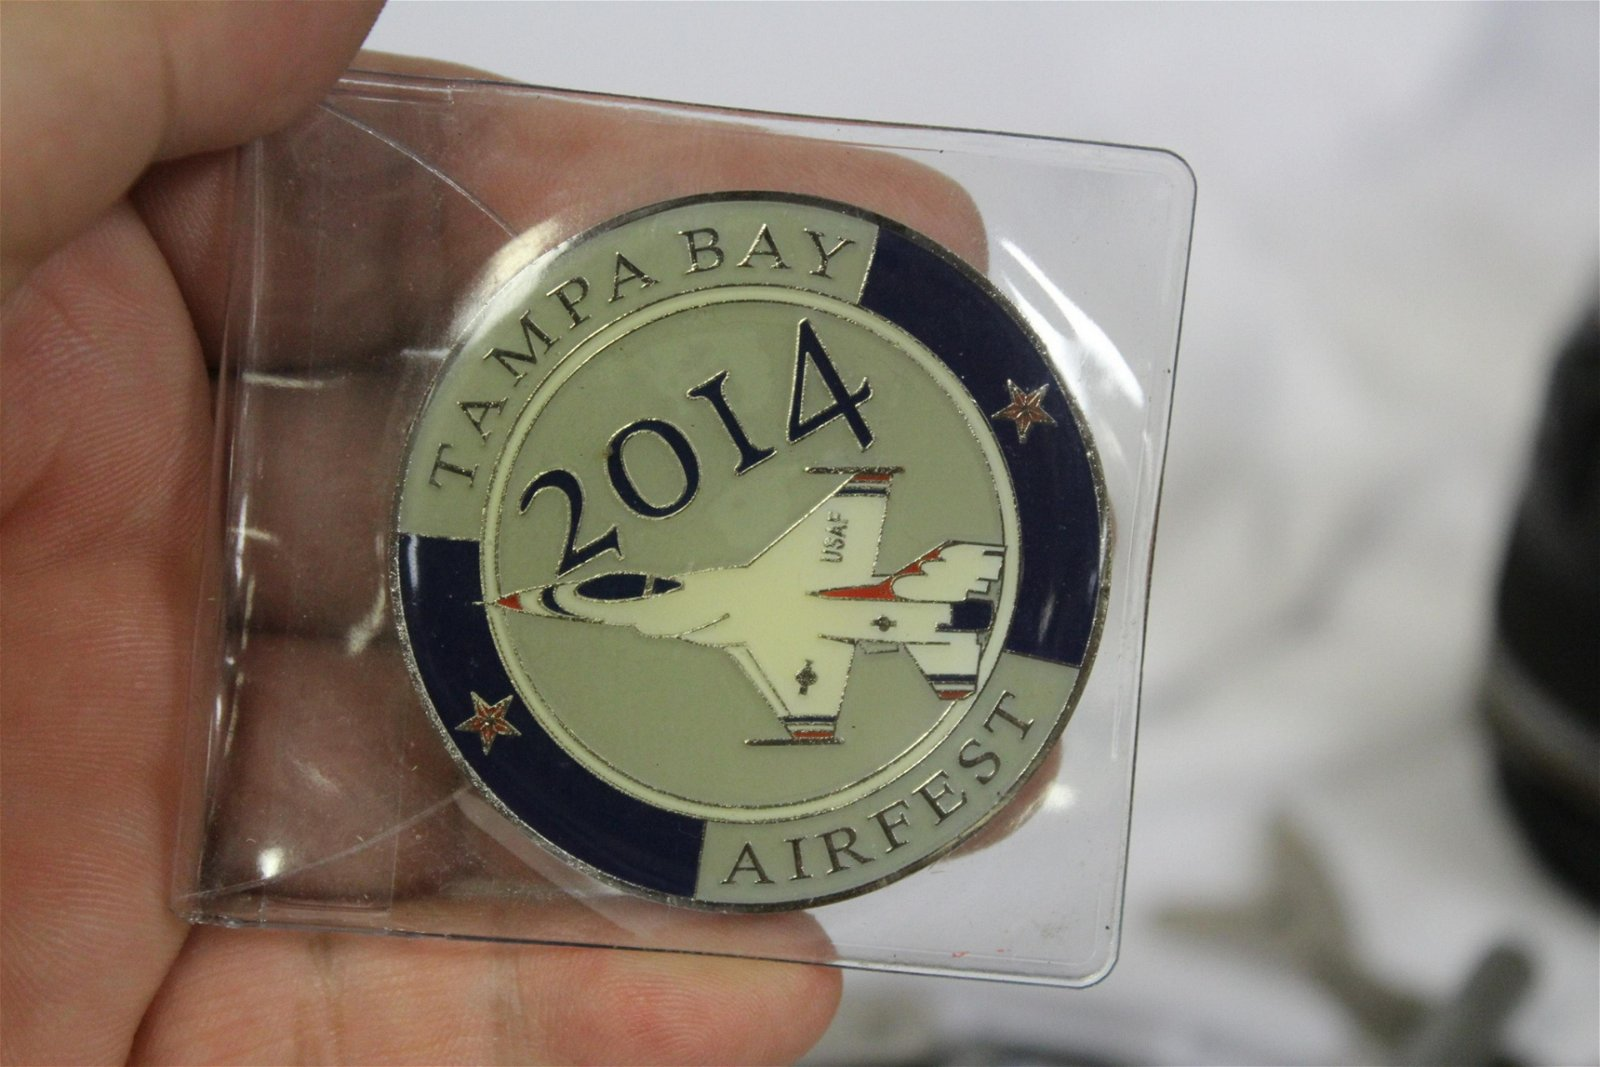 2014 Tampa Bay Airfest Commemorative Coin